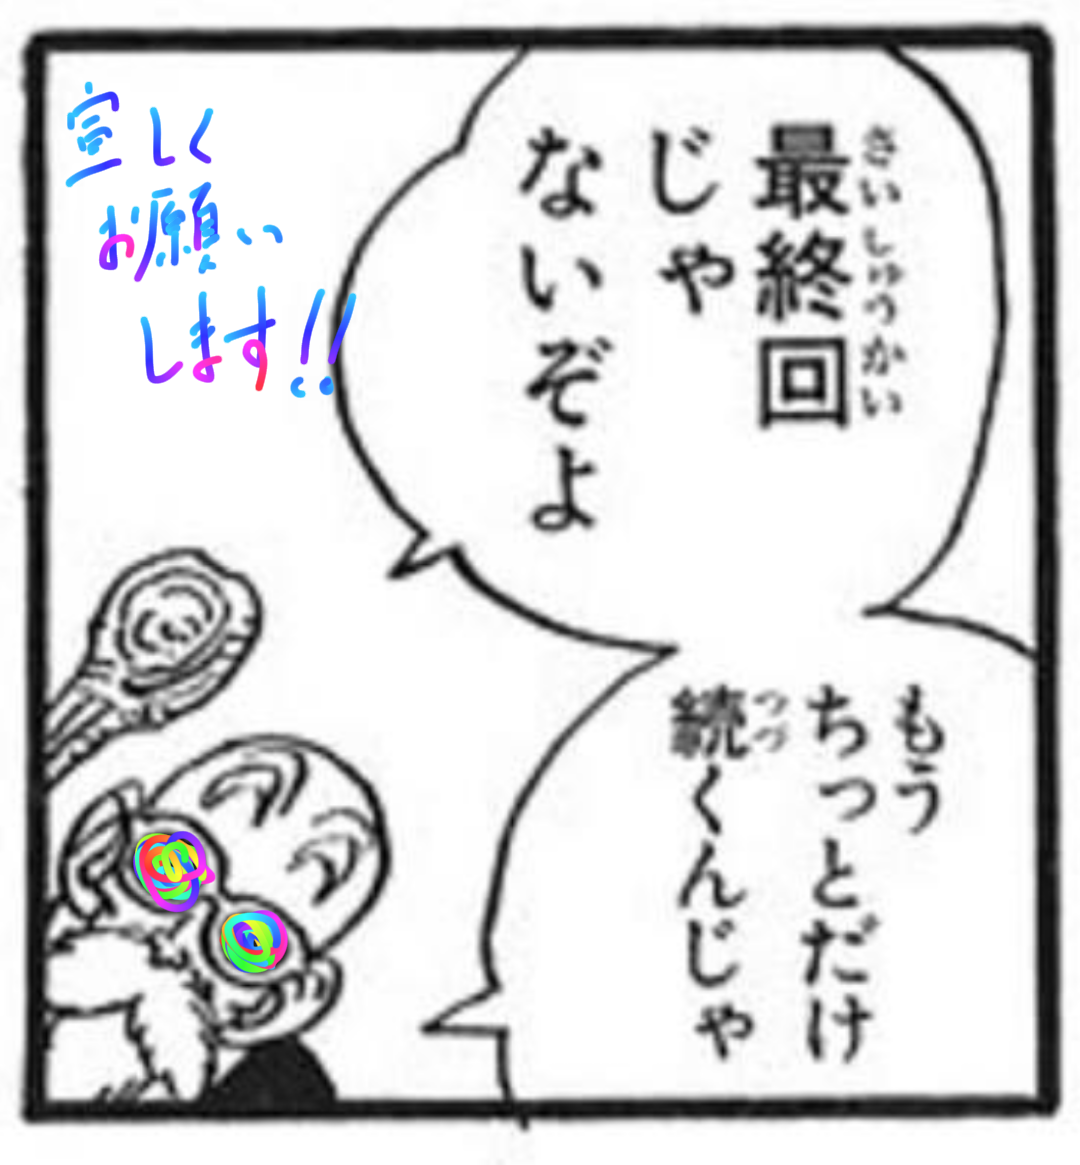 201708182012308bf.png